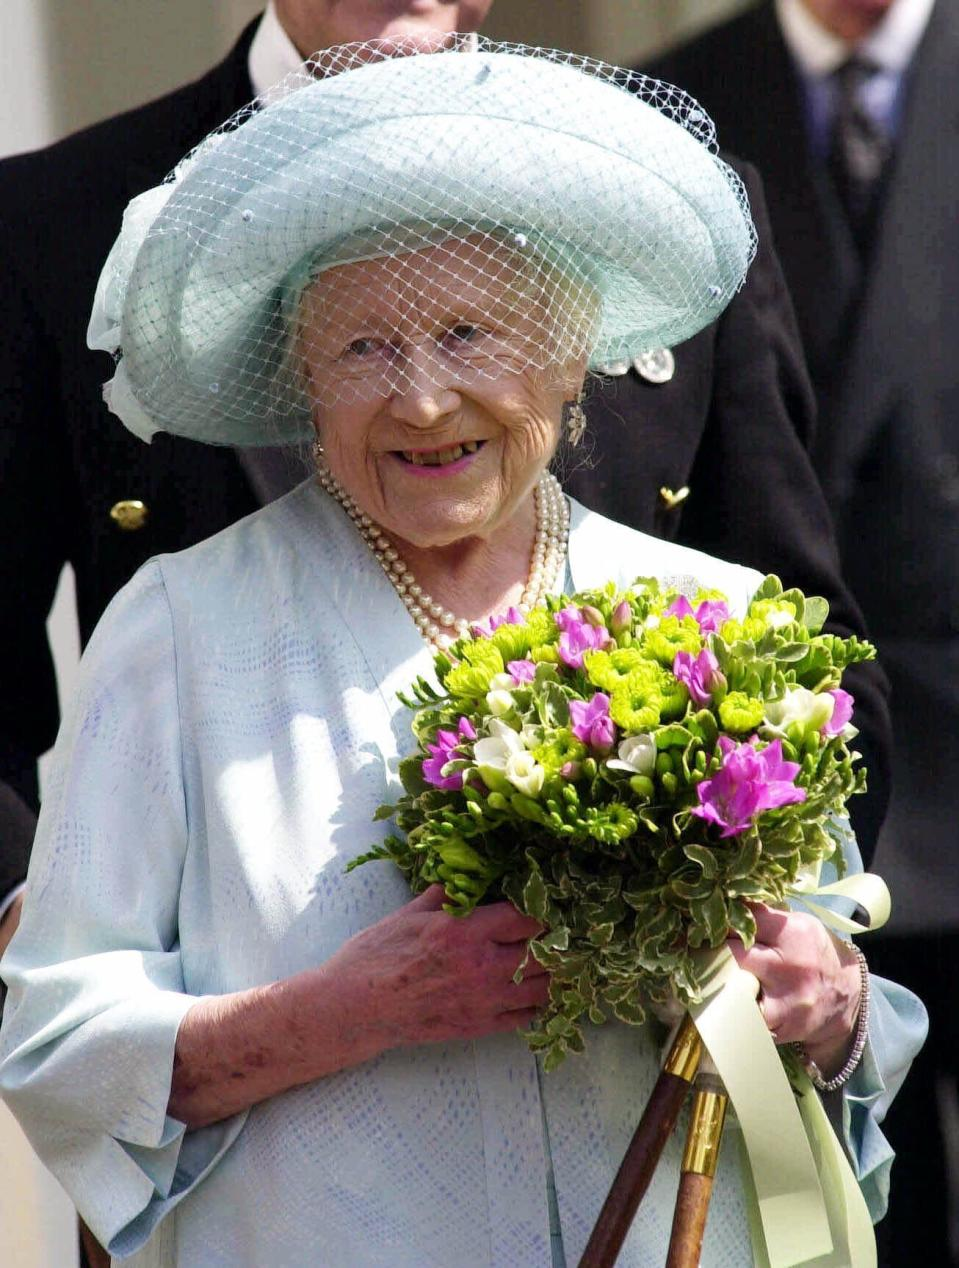 FILE - In this Friday, Aug. 4, 2000 file photo, Britain's Queen Elizabeth, The Queen Mother appears at the main gates to Clarence House, in London, before taking the Salute on her 100th birthday. Prince Philip was the longest serving royal consort in British history. In Britain, the husband or wife of the monarch is known as consort, a position that carries immense prestige but has no constitutional role. The wife of King George VI, who outlived him by 50 years, was loved as the Queen Mother. (Rebecca Naden/pool via AP, File)